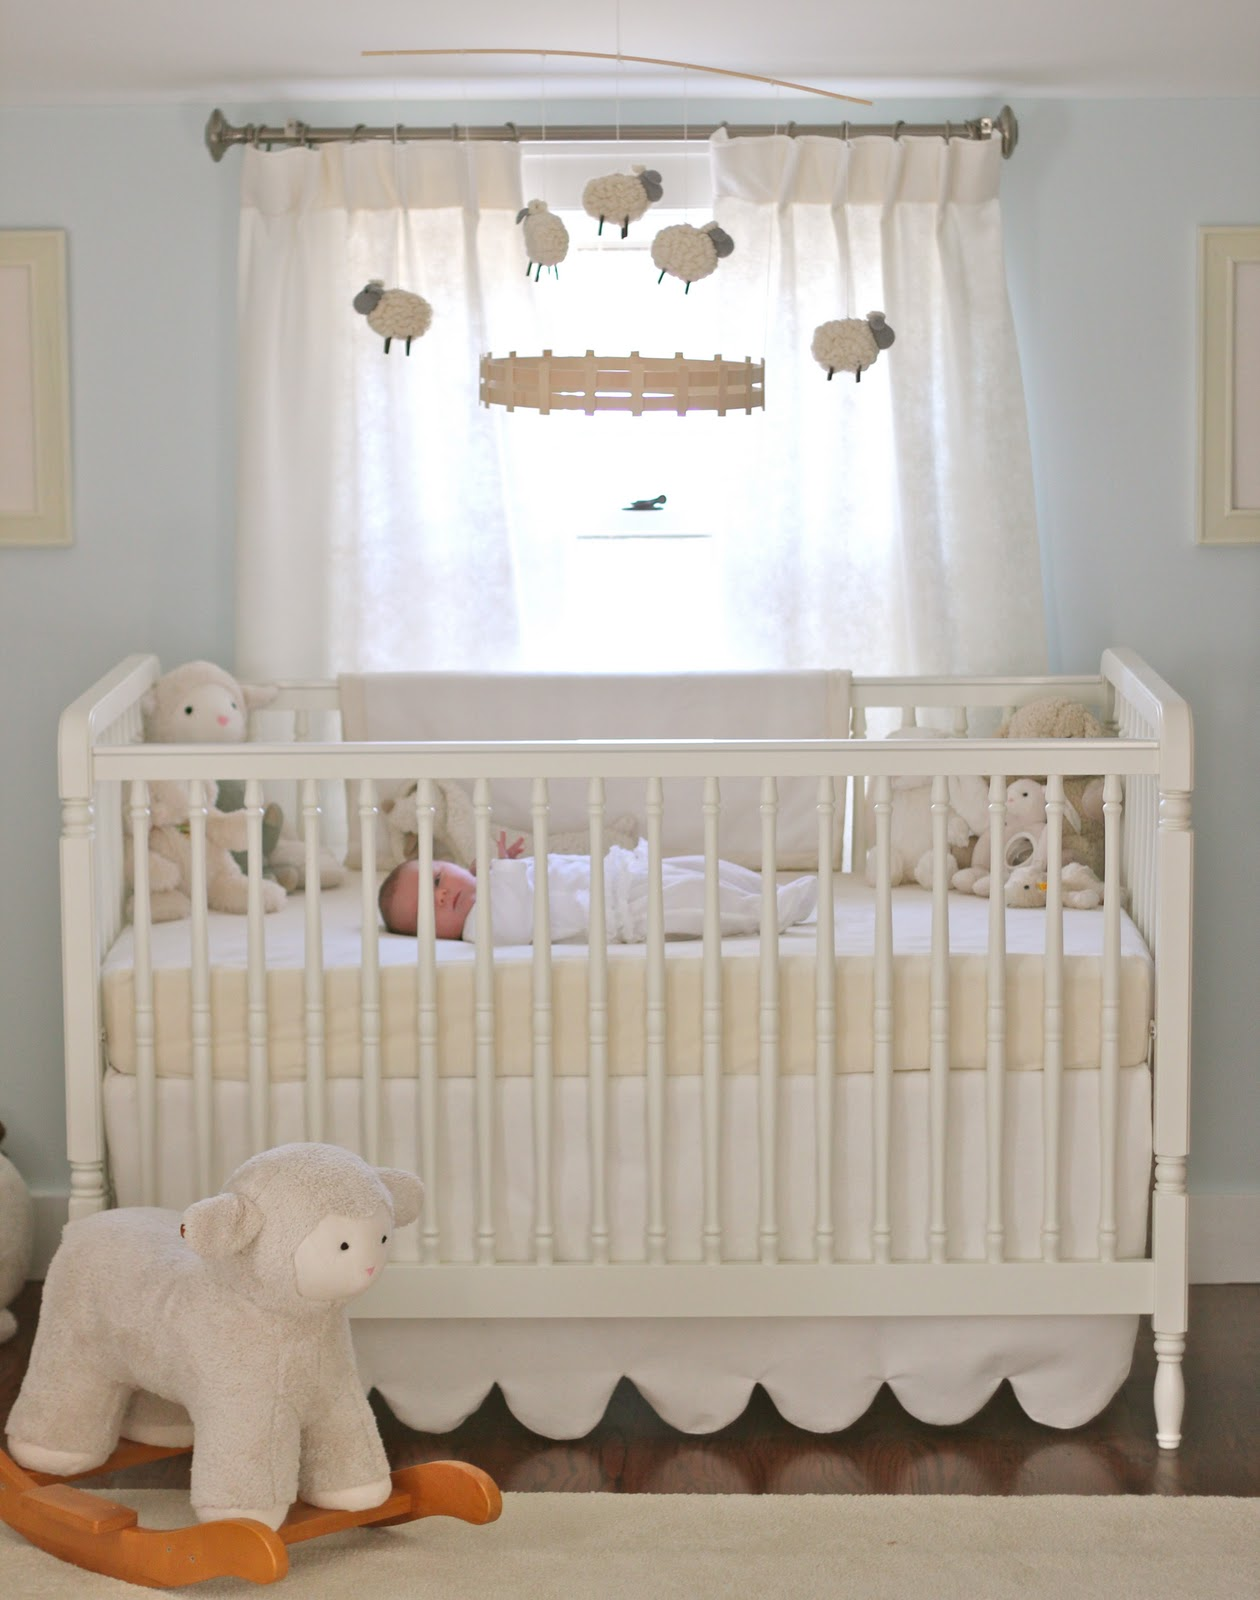 Jenny steffens hobick emma 39 s nursery soft cuddly for Baby cot decoration ideas